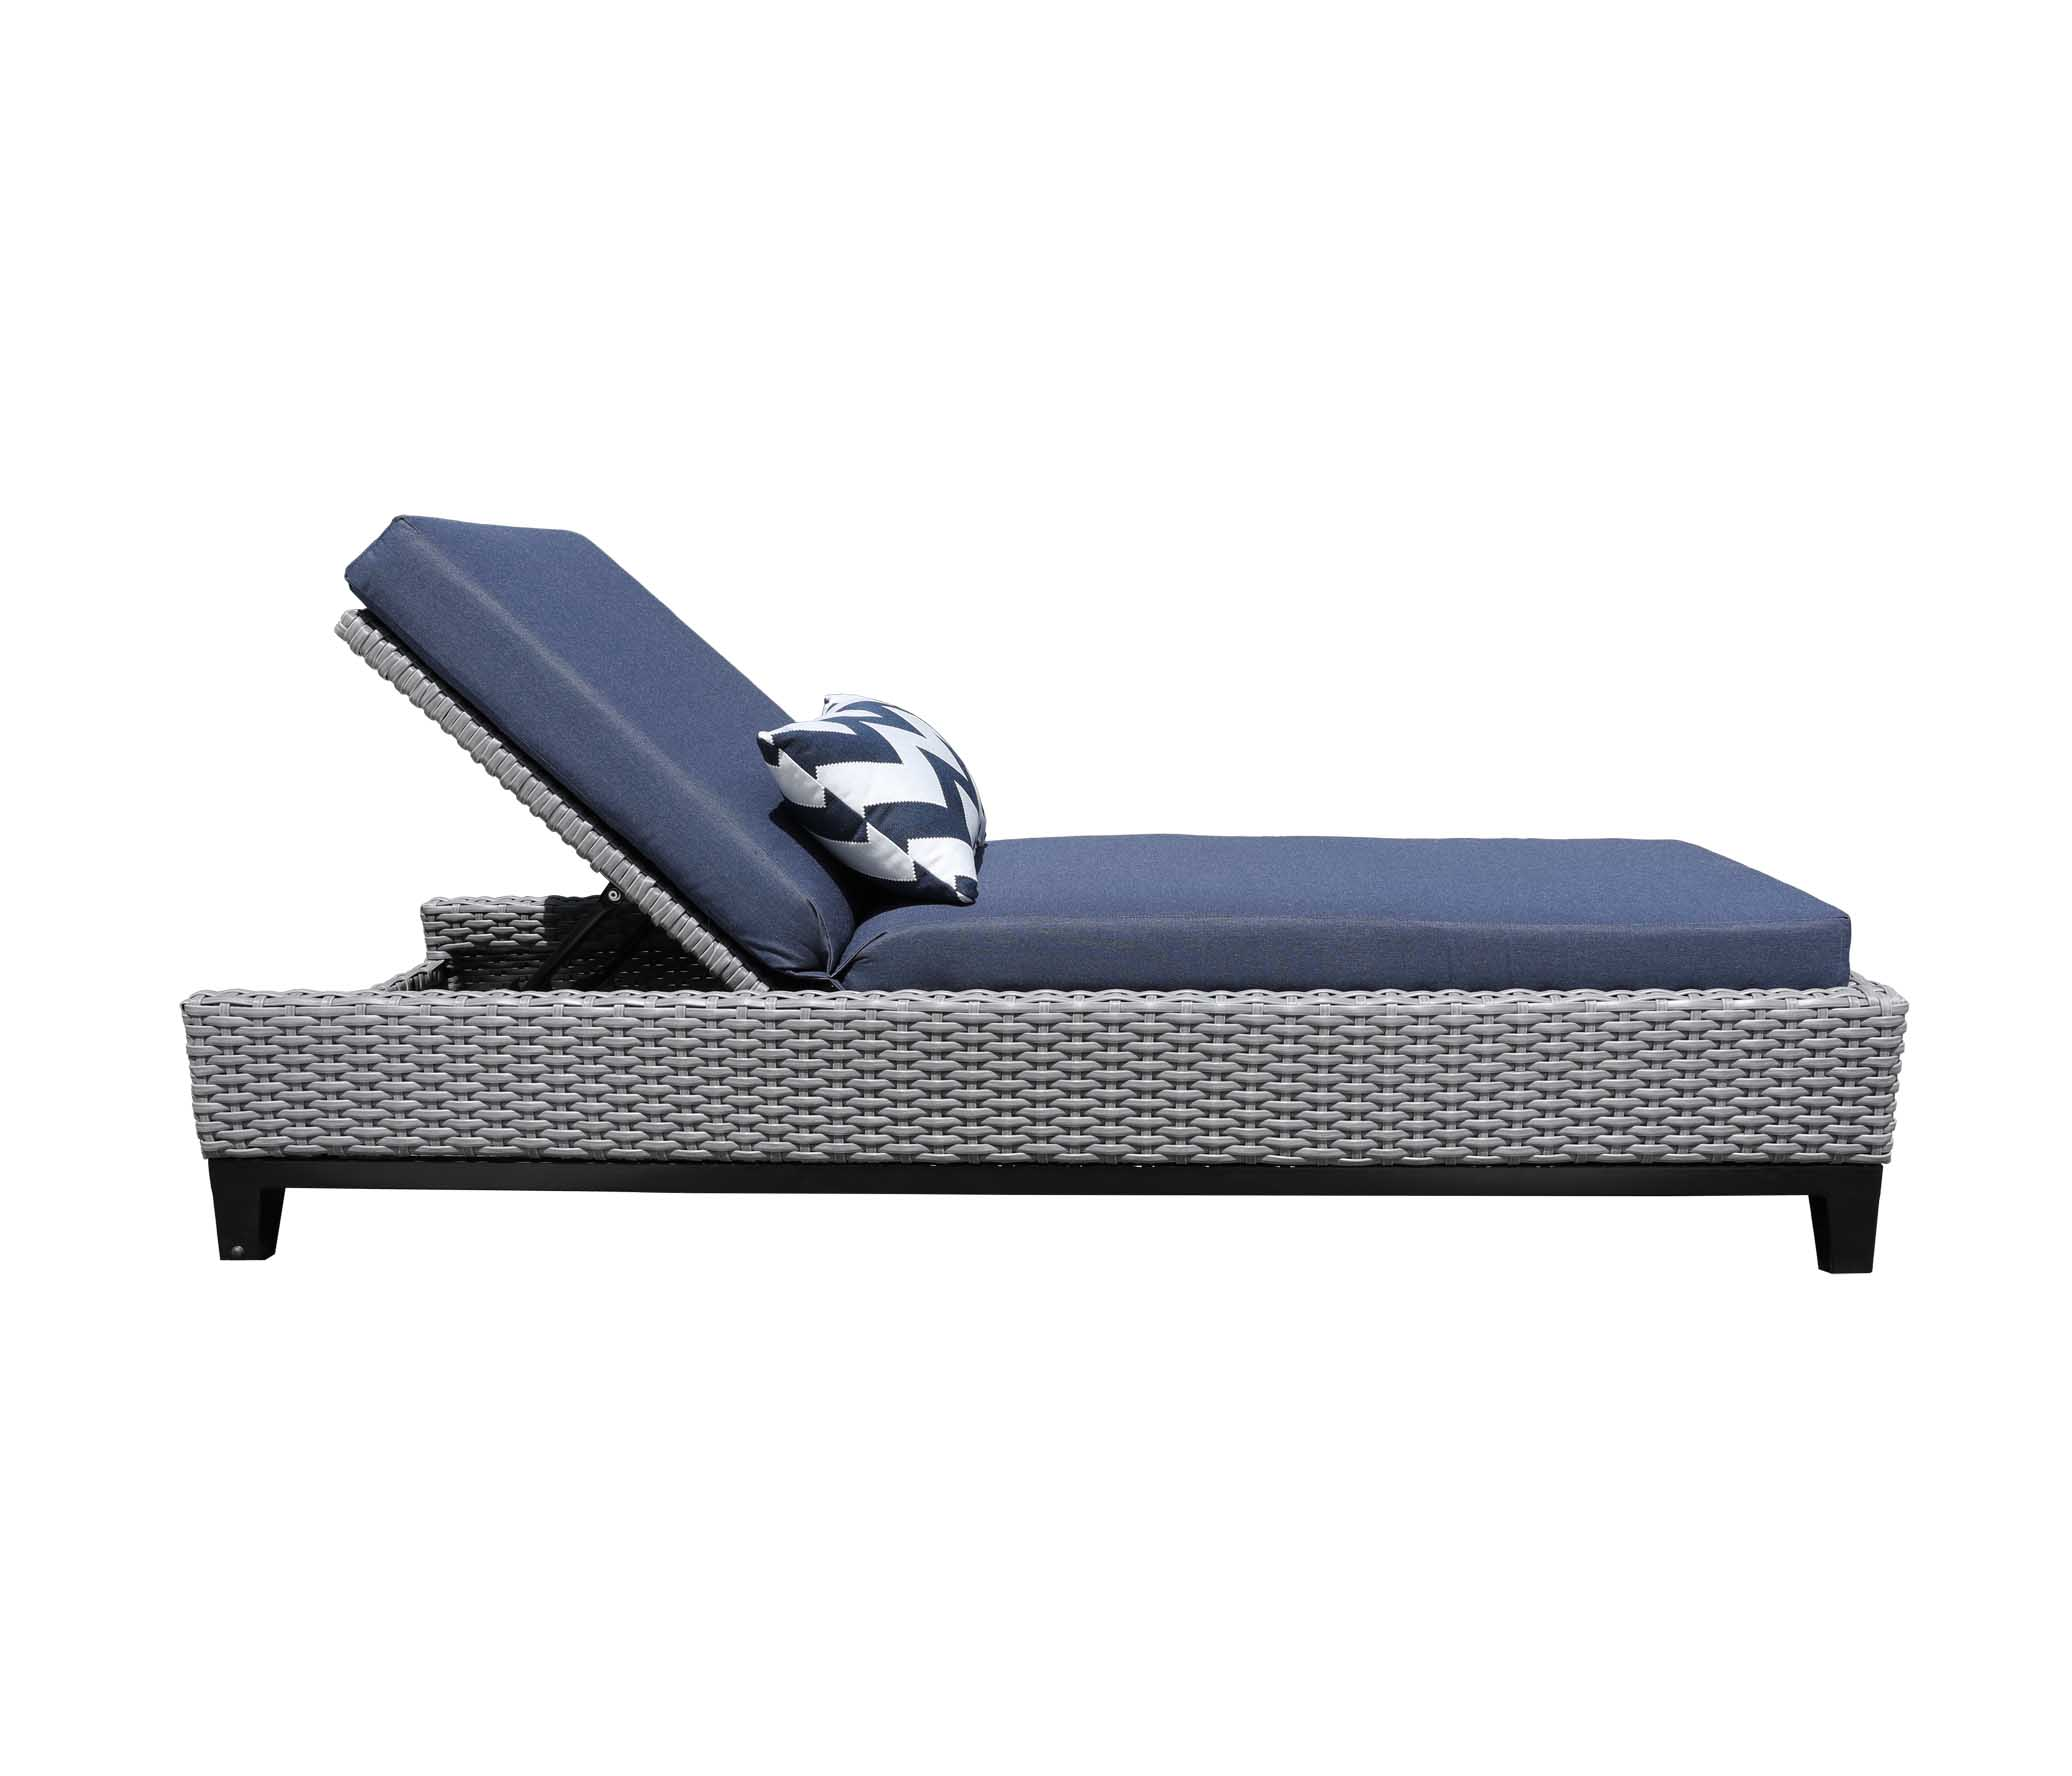 Oakville Outdoor Furniture Tribeca Chaise Lounge 9427 Patio Furniture Wicker